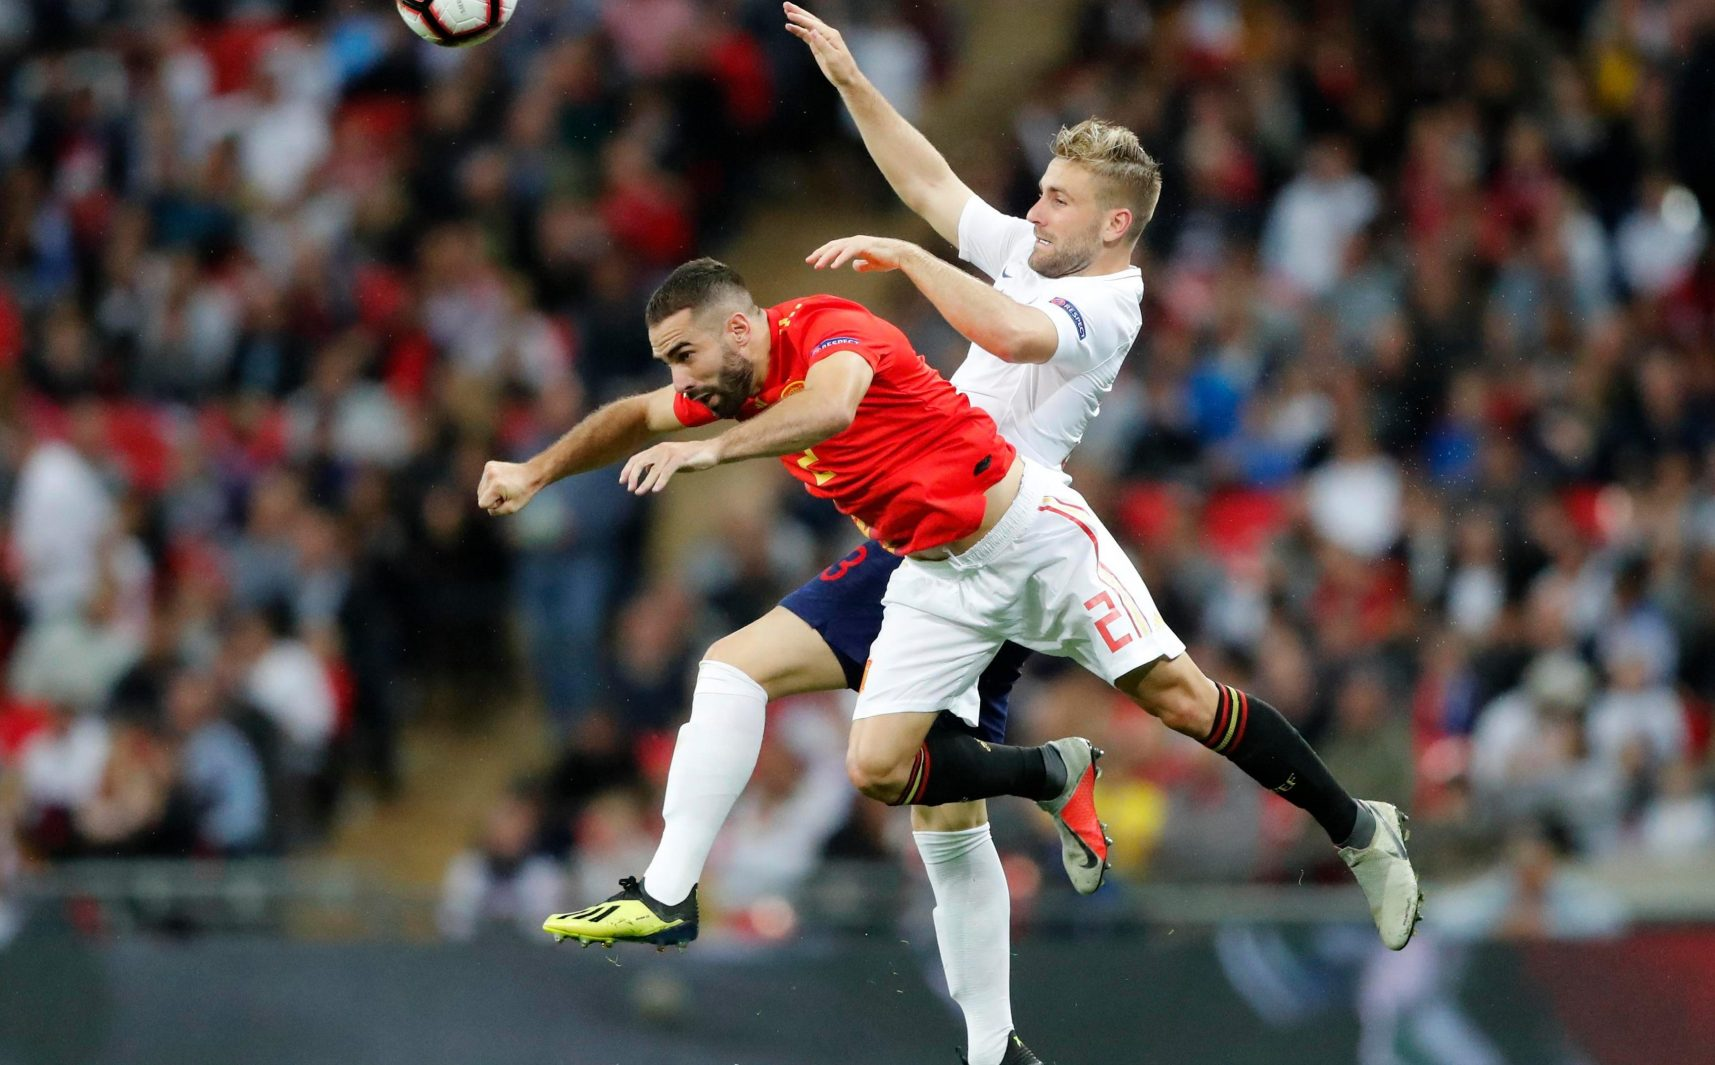 England defender Luke Shaw needed lengthy treatment after he was sent crashing to the ground in a challenge with Dani Carvajal